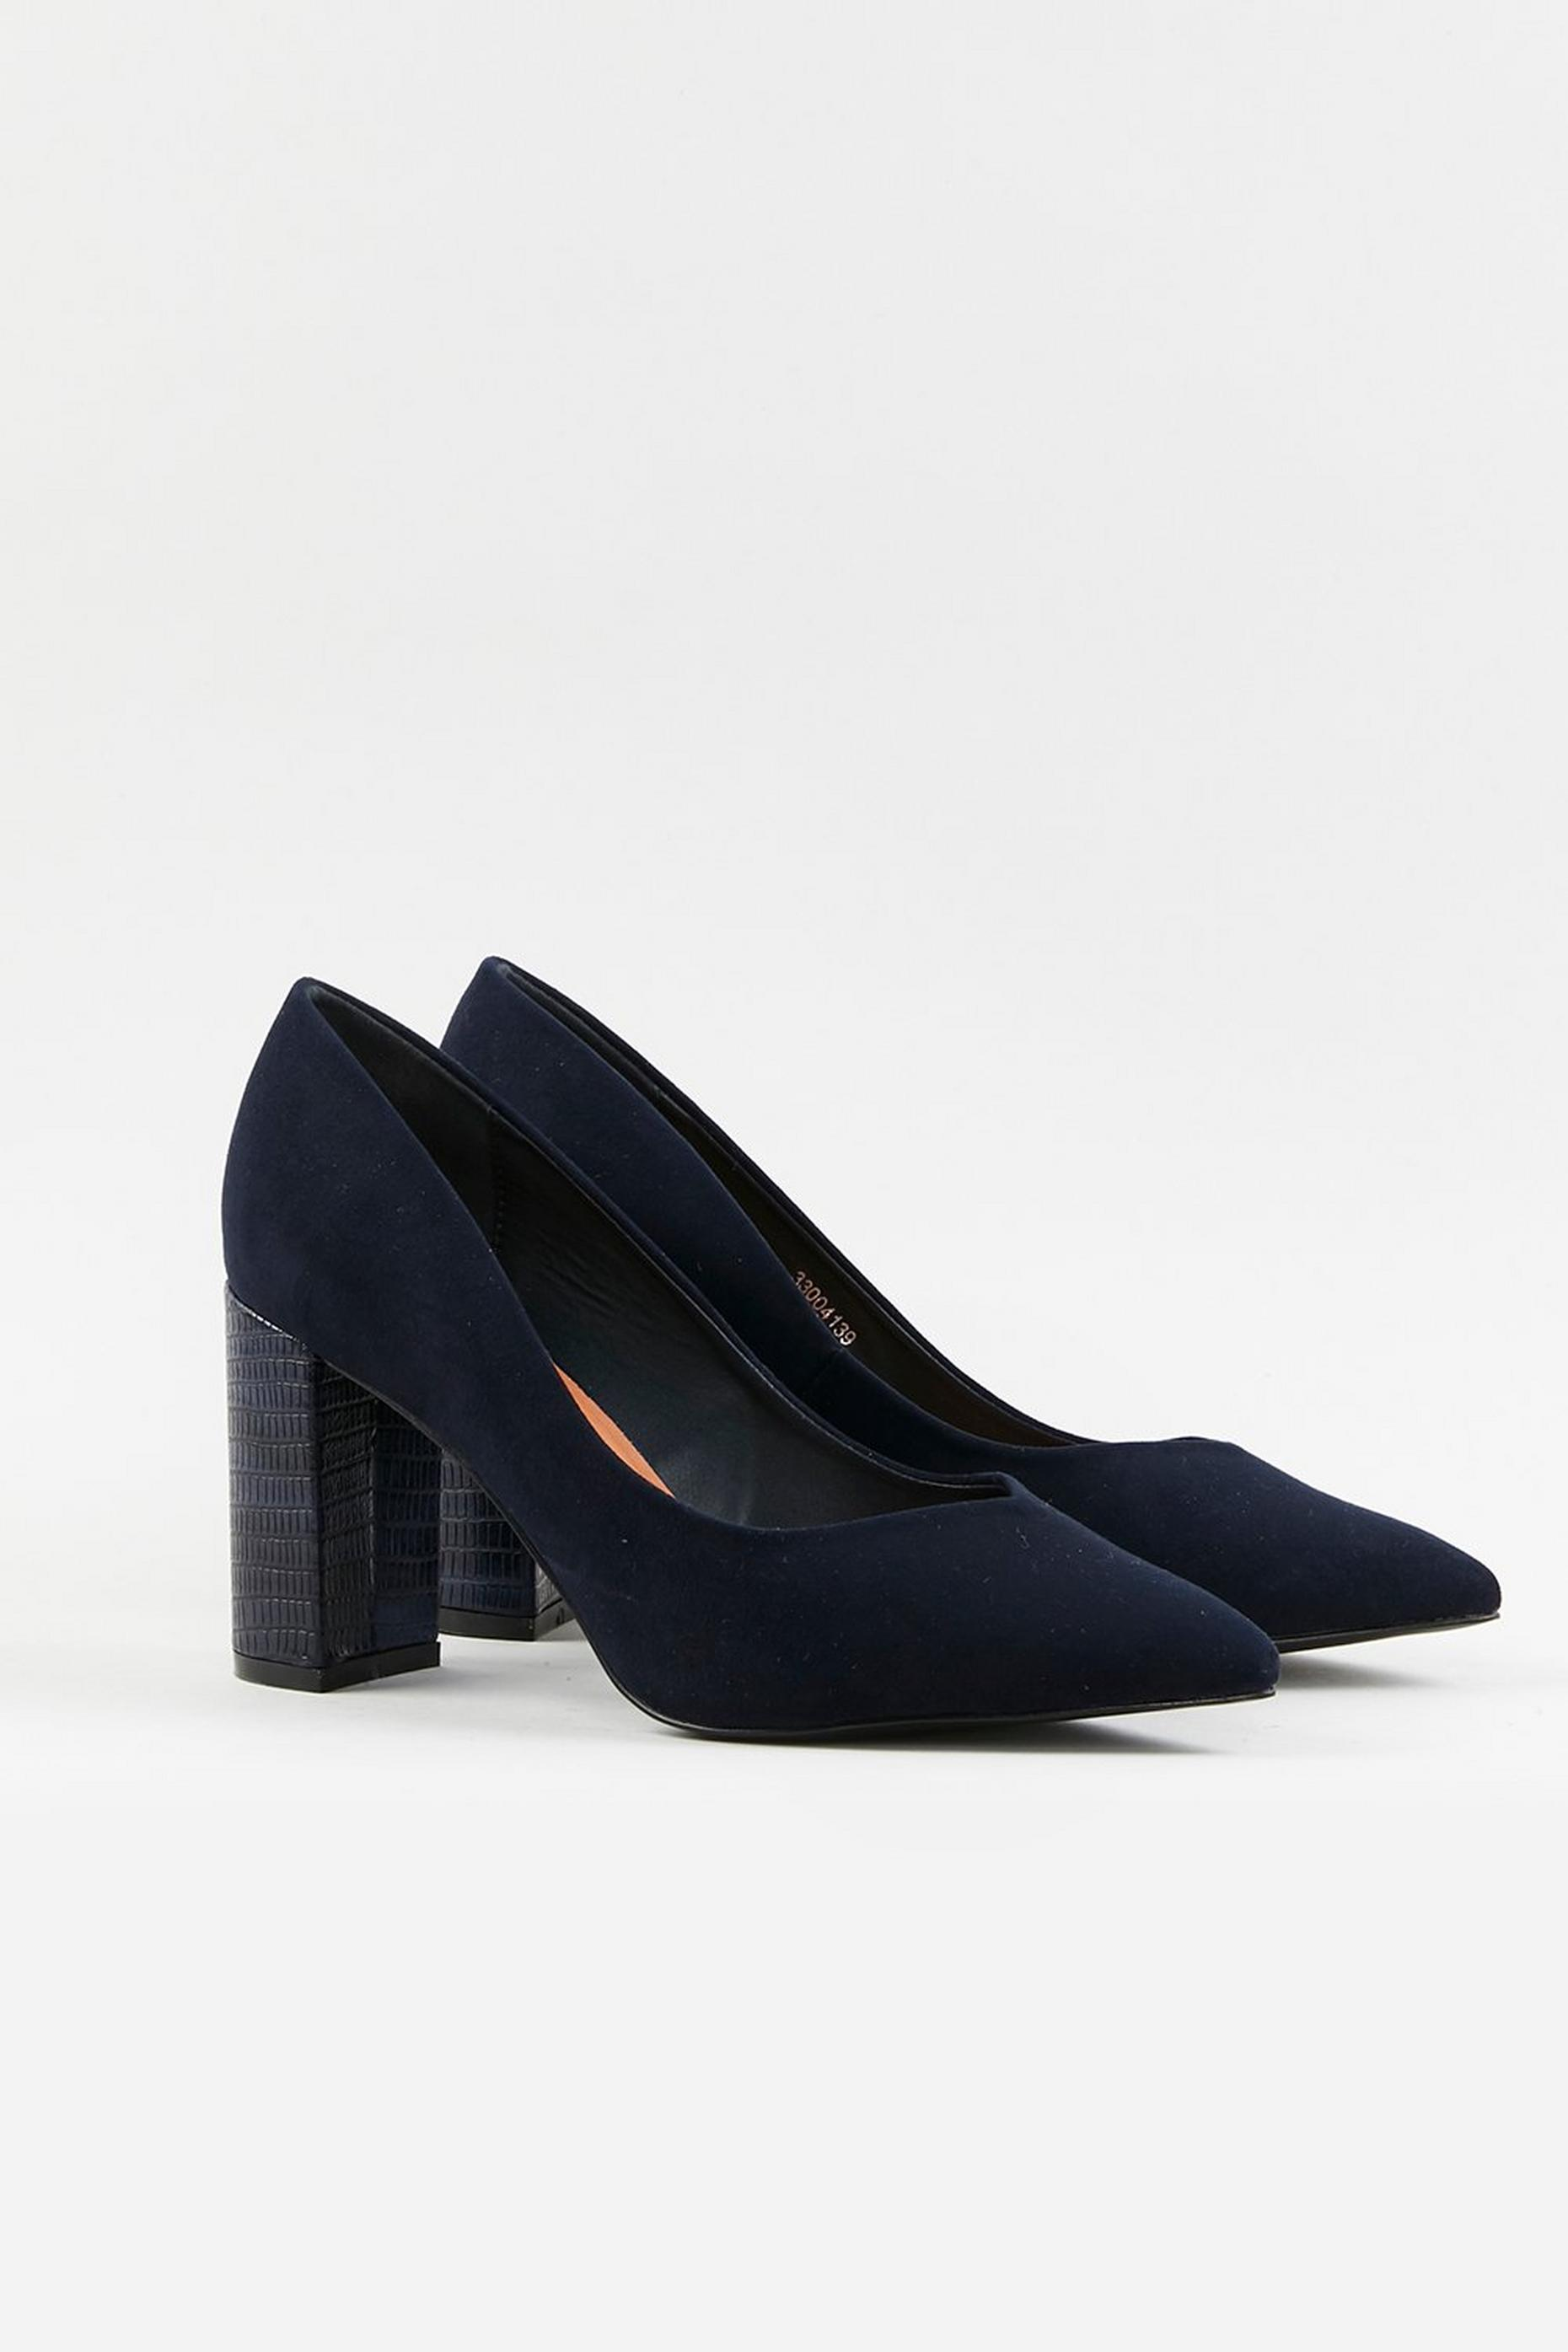 WIDE FIT Navy Block Heel Shoes